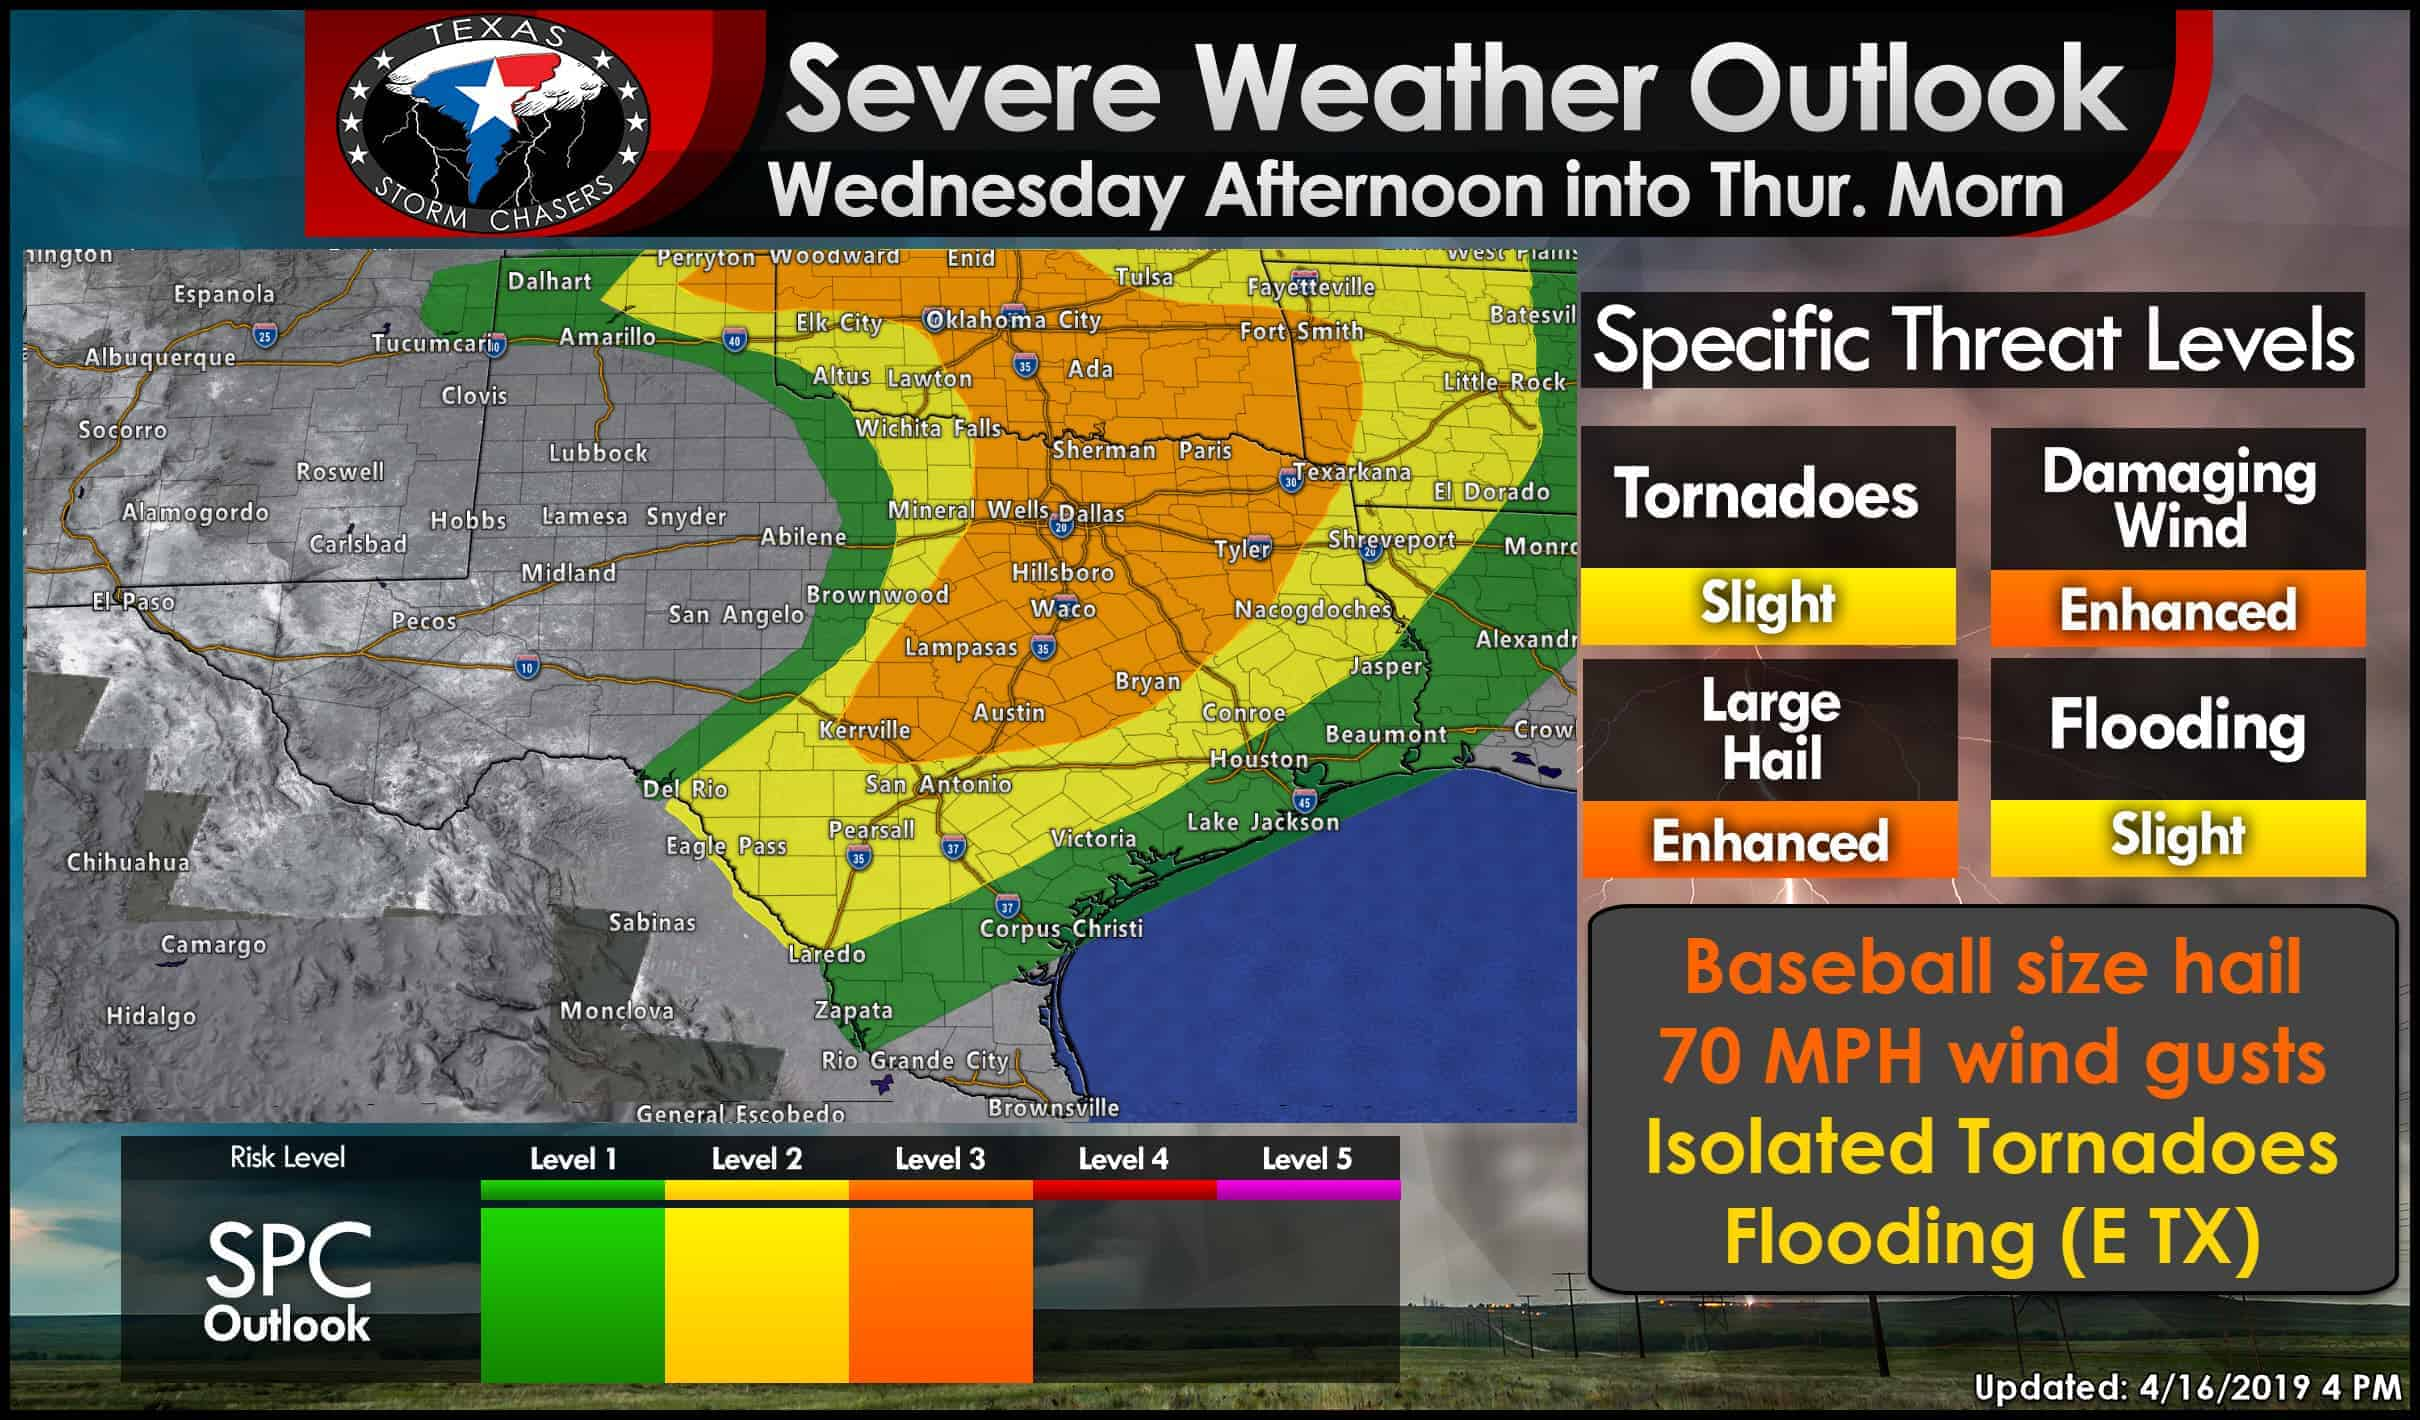 After 4PM Wednesday: Storms with giant hail threat